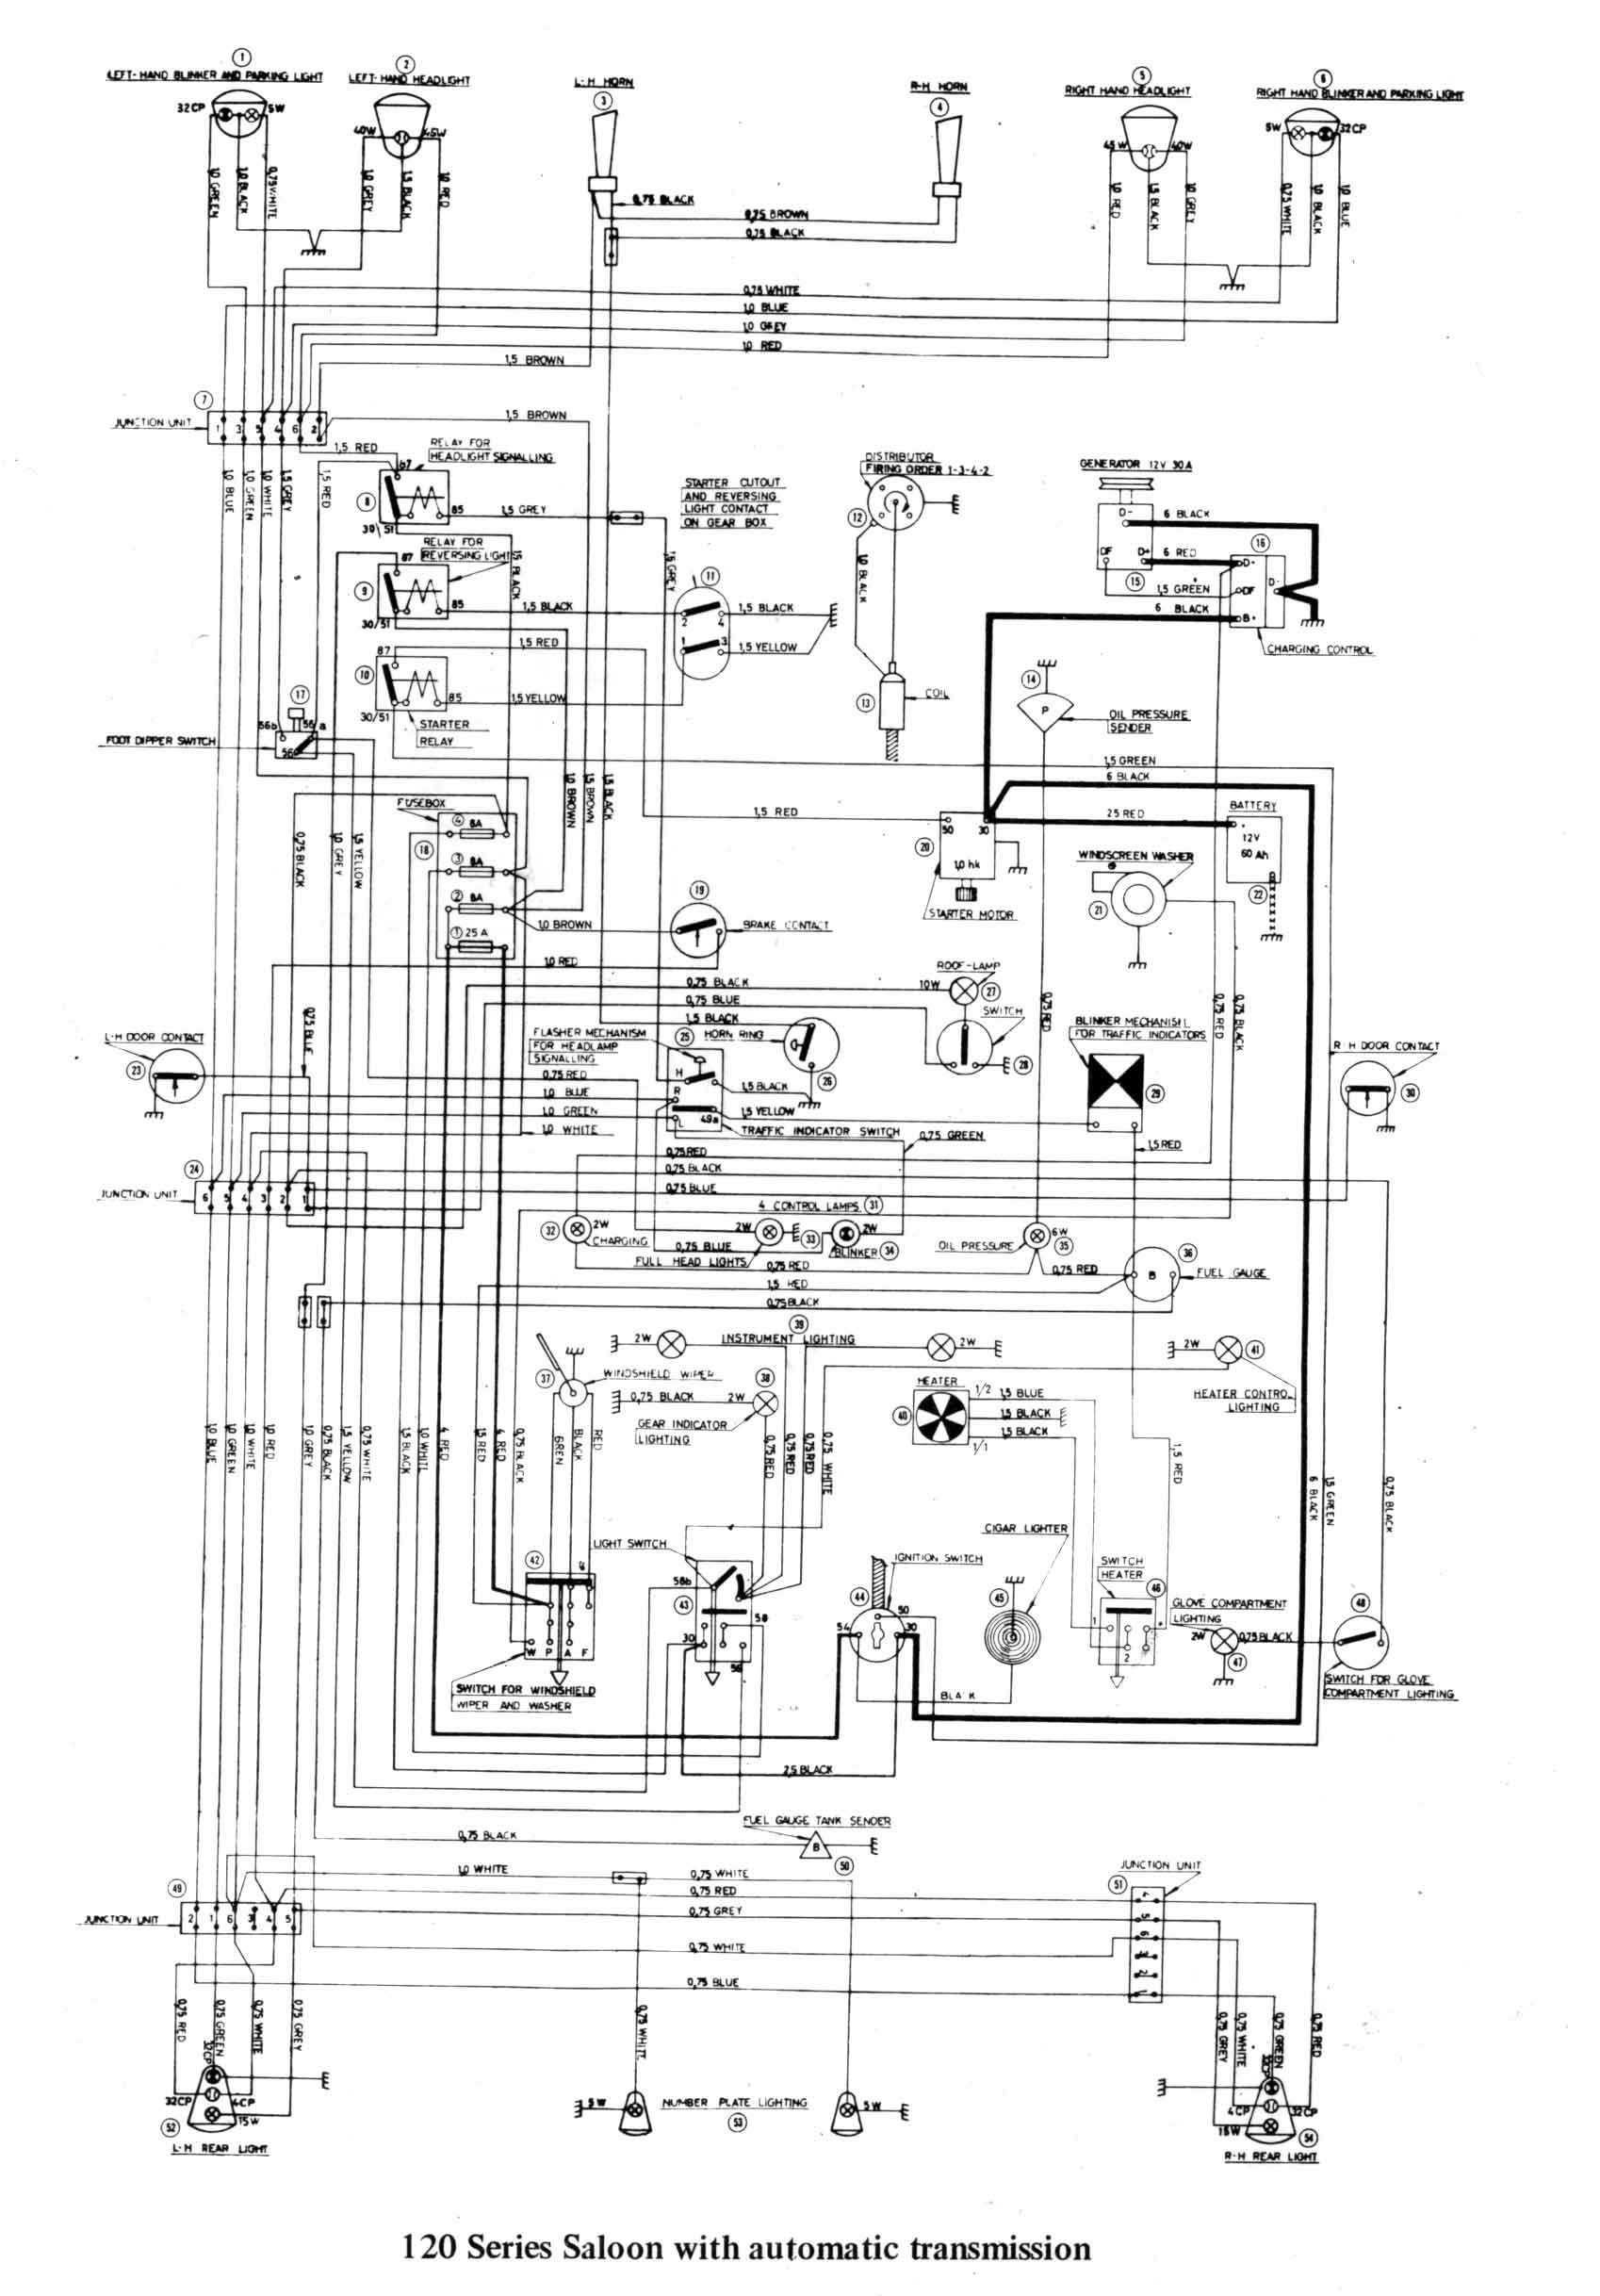 hight resolution of automotive wiring diagram practice new peterbilt model 348 359 362 wiring diagram car tuning wire center